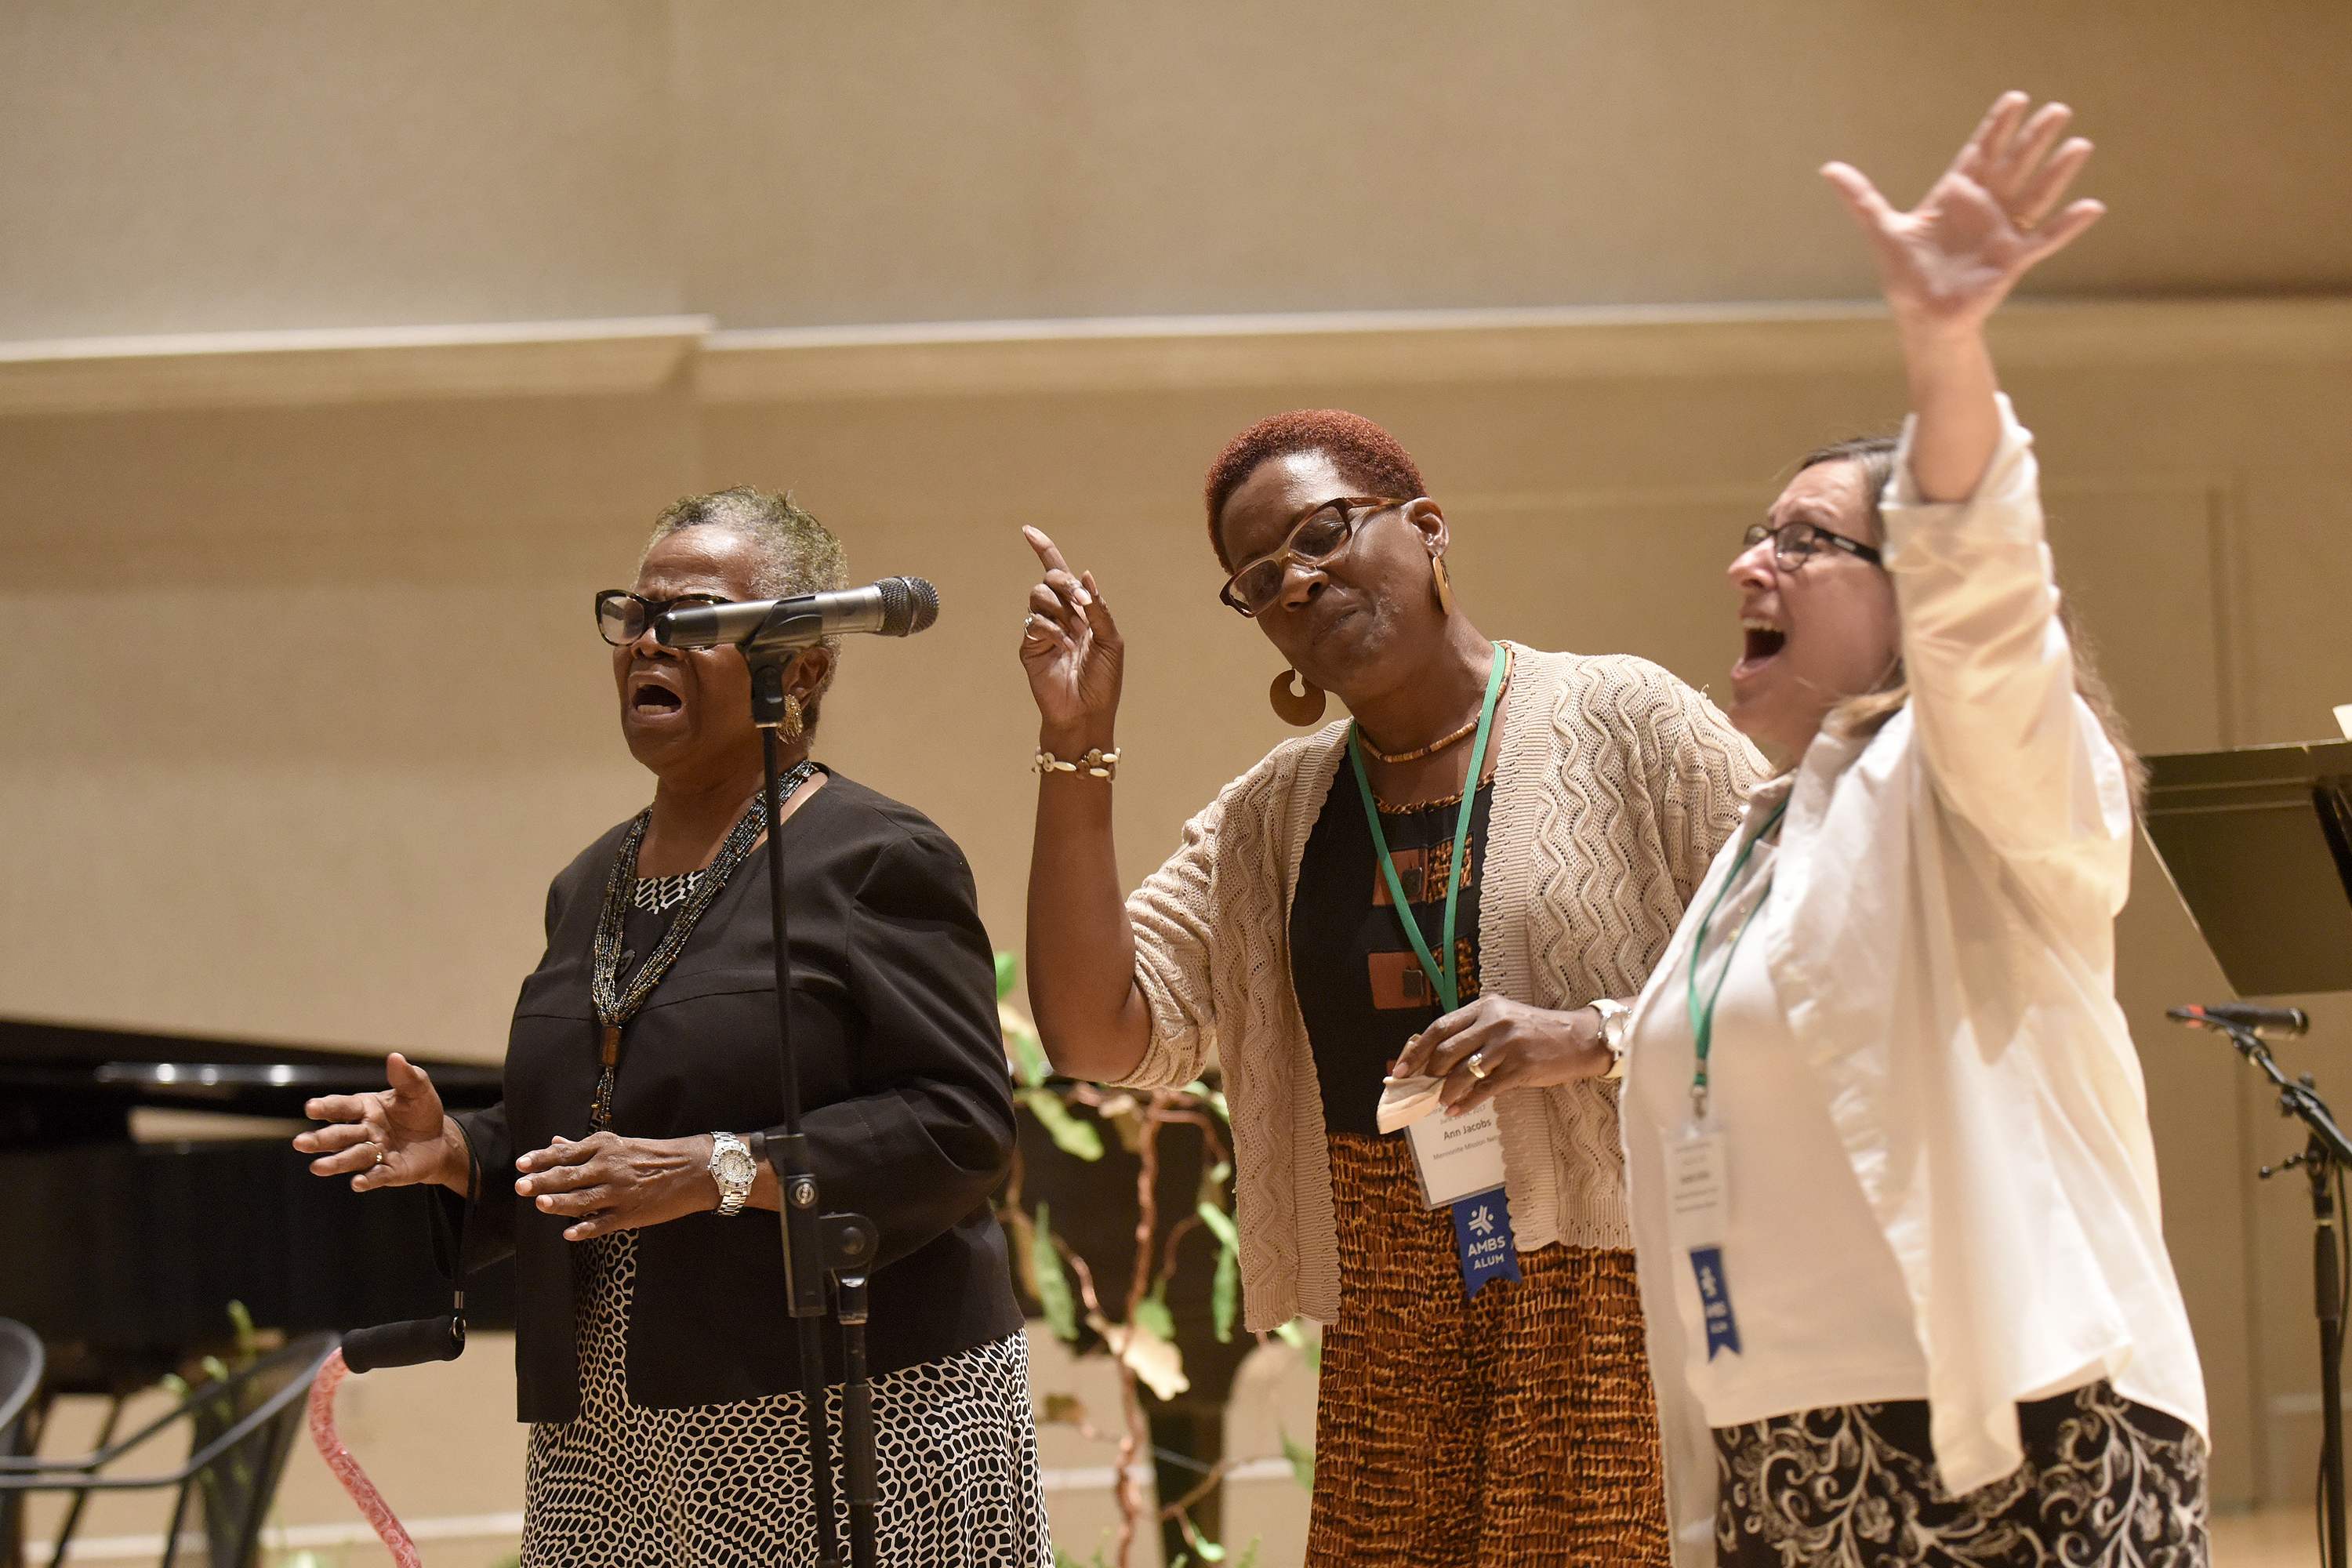 Work in Progress sings during the Friday night worship at Central District Conference, Friday, June 23, 2017, at Bluffton University, Bluffton, OH. Work in Progress is (from left) Lefuarn Harvey, Ann Jacobs and Sandy Miller. All three work at Mennonite Mission Network. Photograph by J. Tyler Klassen